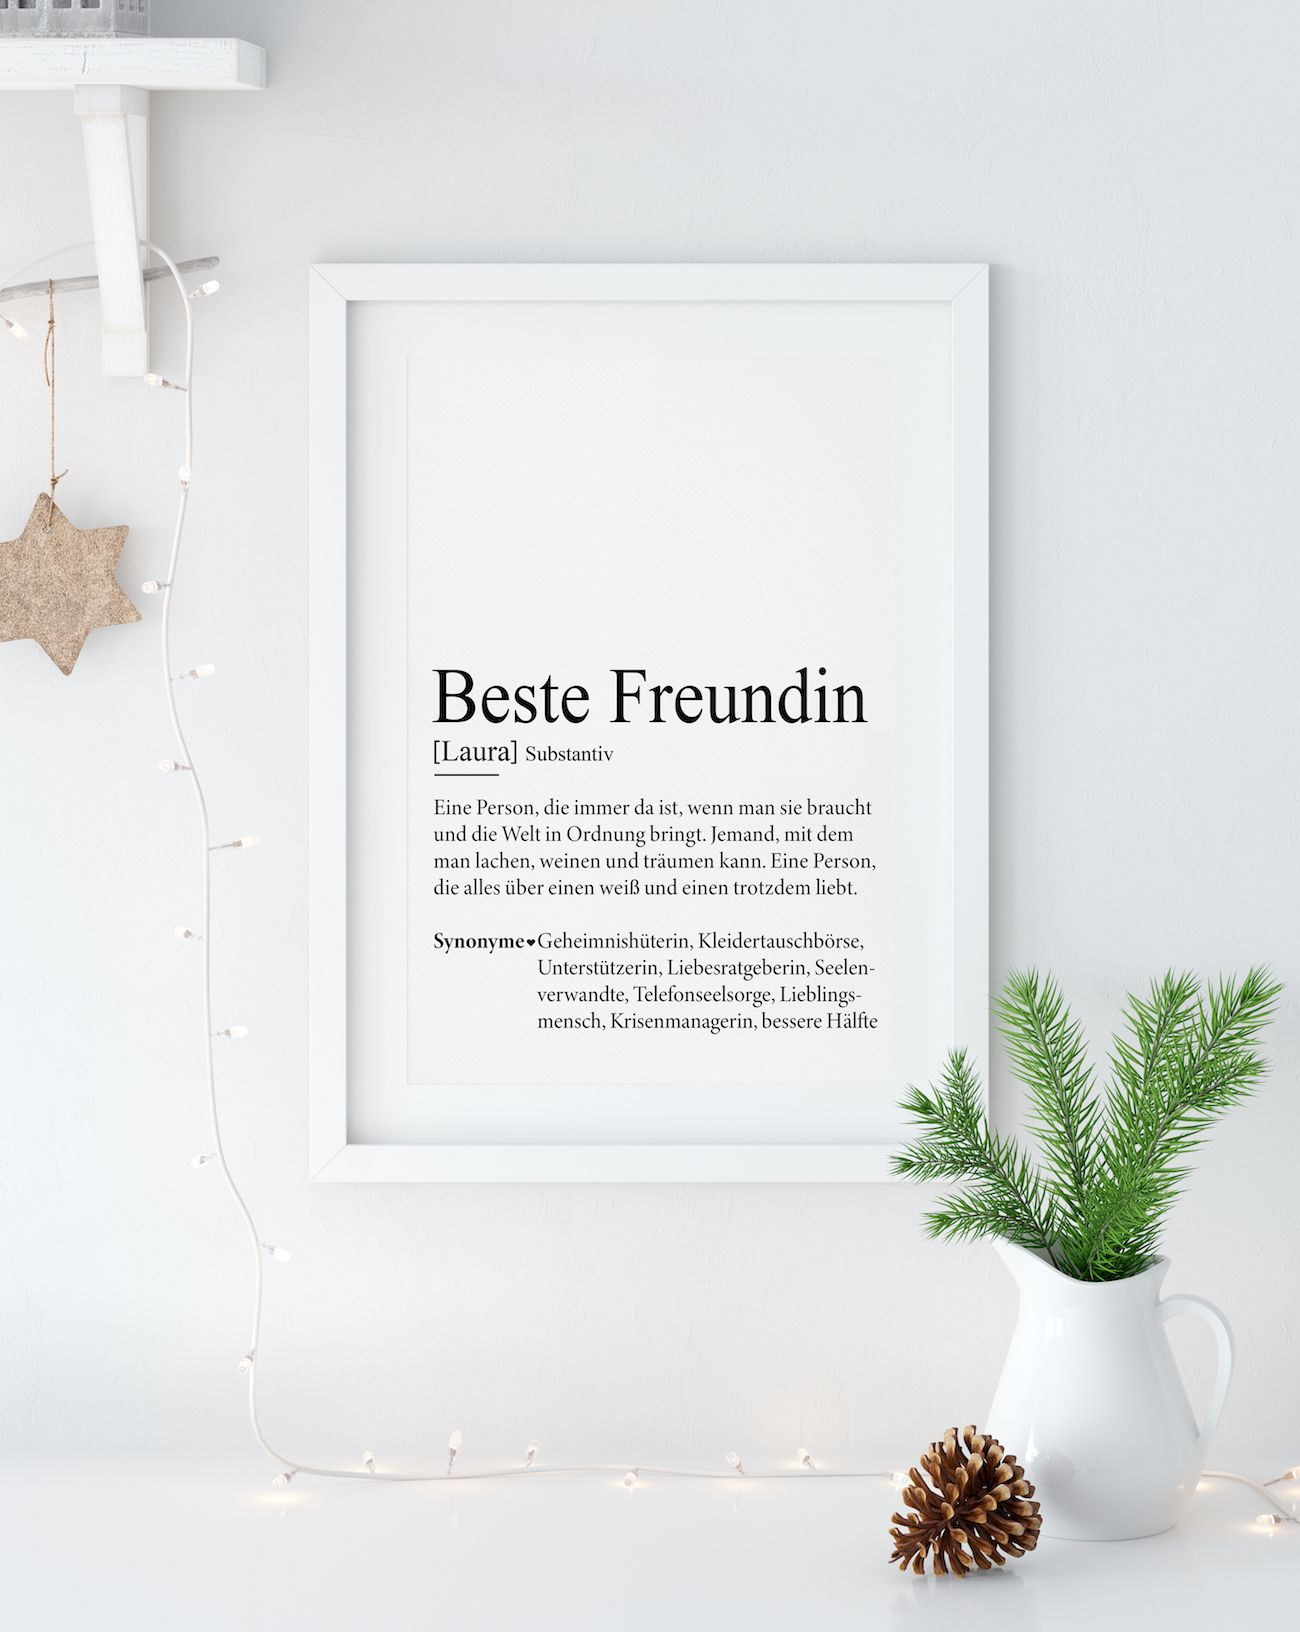 Beste Freundin Definition